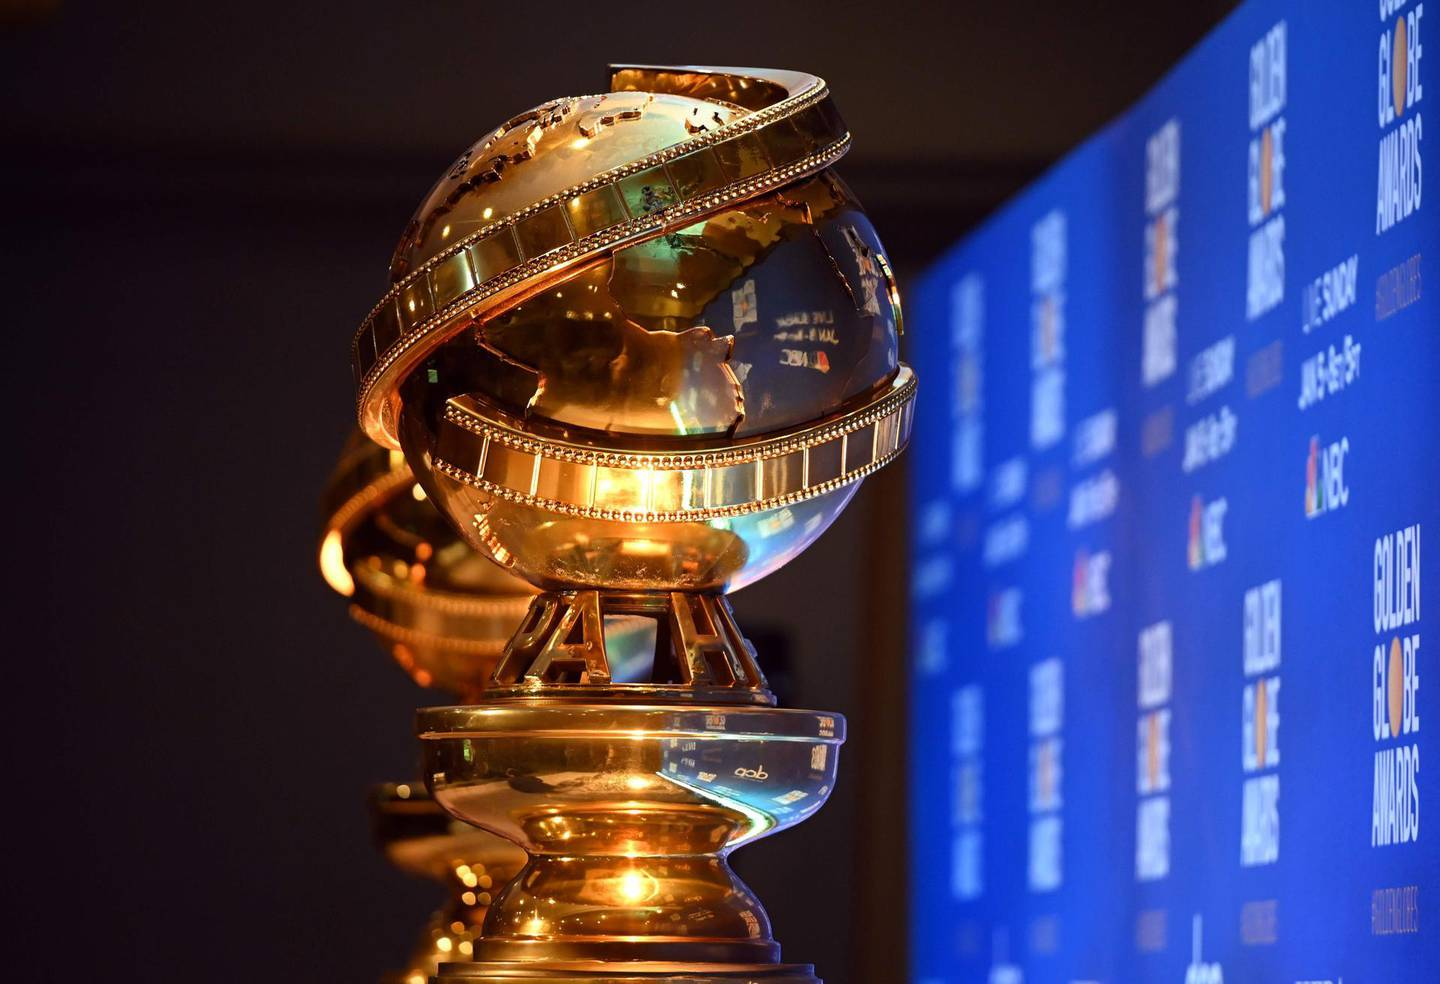 """(FILES) In this file photo taken on December 9, 2019, Golden Globe statues are set by the stage ahead of the 77th Annual Golden Globe Awards nominations announcement in Beverly Hills. Next year's Golden Globes will take place on February 28,  said the Hollywood Foreign Press Association in a statement on June 22, 2020, an unusually late date for the glitzy film and television award show as Hollywood scrambles to adjust to the coronavirus pandemic.  The Globes, which are typically held in early January, will take the weekend previously reserved for the Oscars, which last week were delayed by eight weeks to April 25.  / AFP / Robyn BECK / TO GO WITH AFP STORY by Andrew MARSZAL and Javier TOVAR, """"Golden Globes rev up award season with Netflix in pole position"""""""